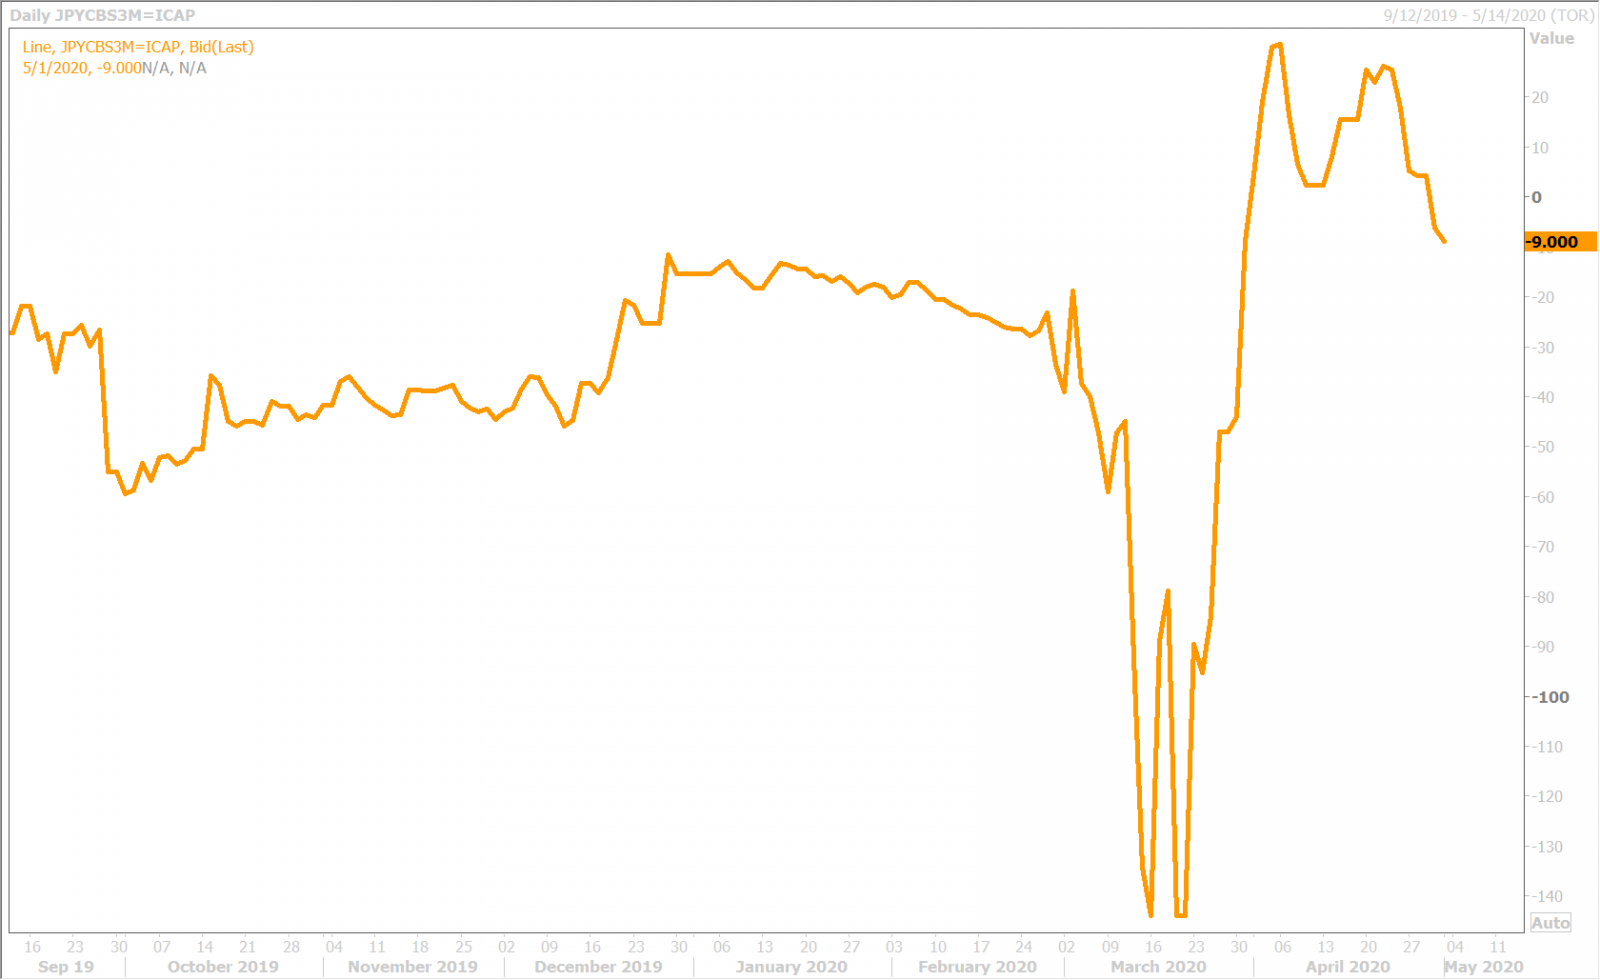 USDJPY 3-MONTH CROSS CURRENCY BASIS SWAP DAILY